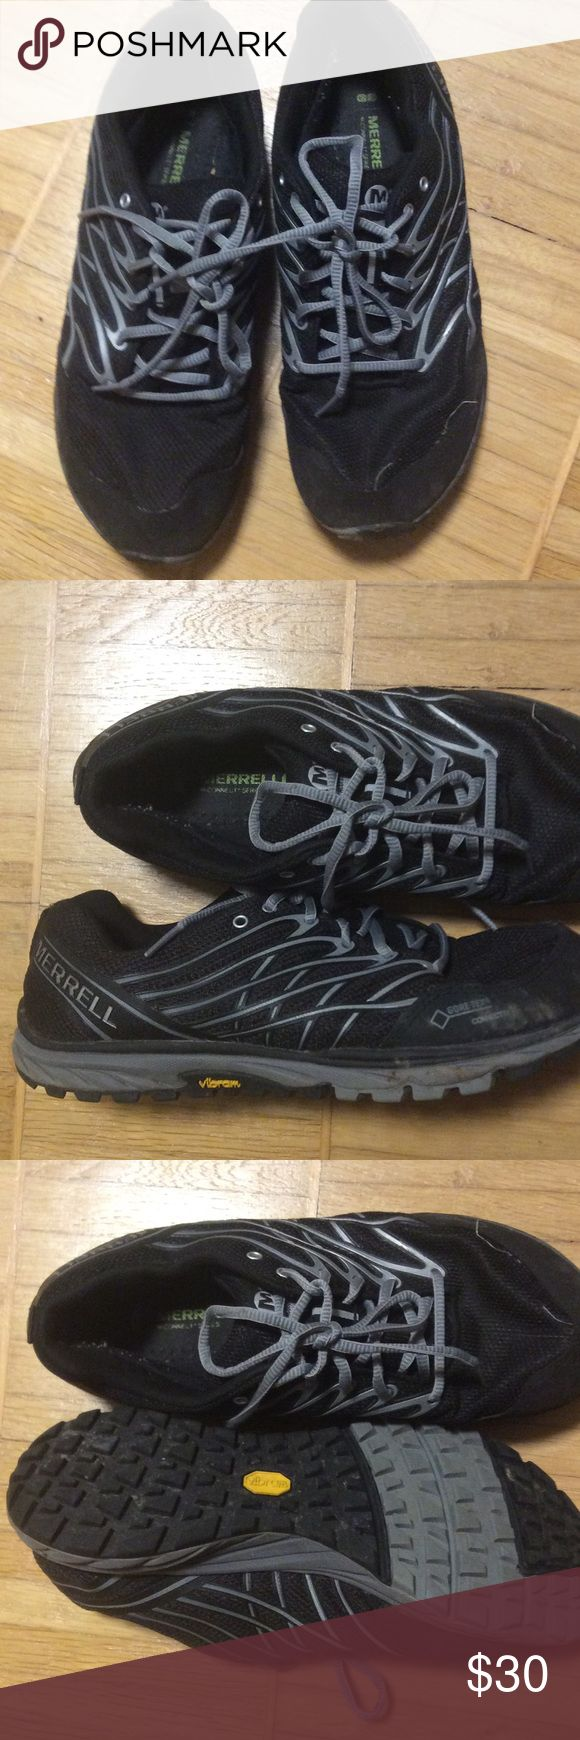 Merrell minimalist Vibram shoe w gore-Tex Used in good condition w no sign of wear on the Vibram sole. Super comfortable Merrell minimalist shoe w gore Tex connect Merrell Shoes Athletic Shoes